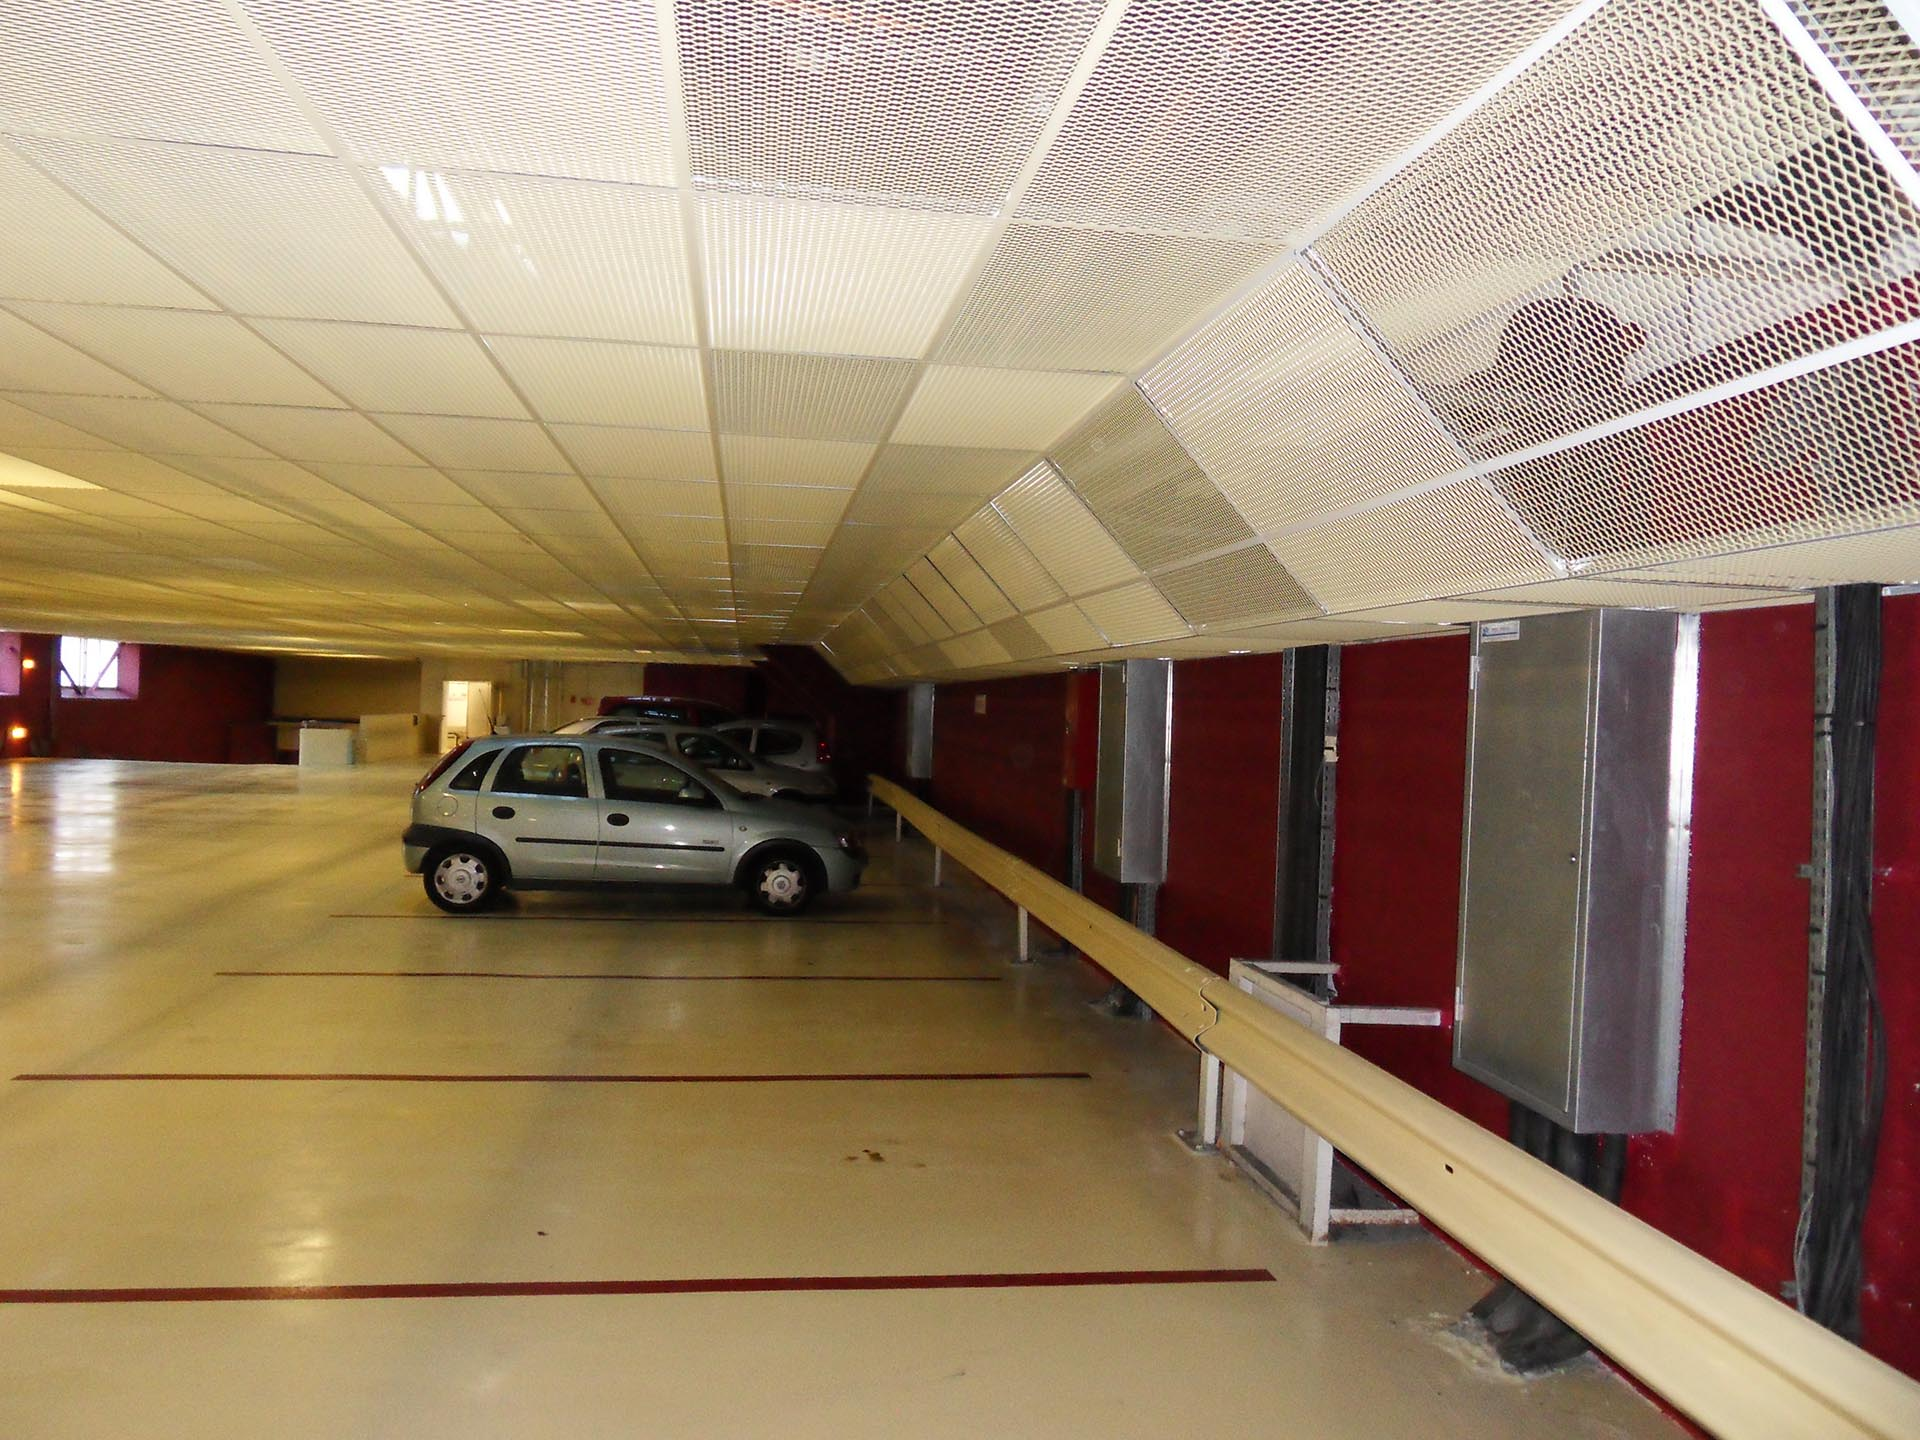 Architecte marseille am nagement int rieur d 39 un parking for Architecte amenagement interieur